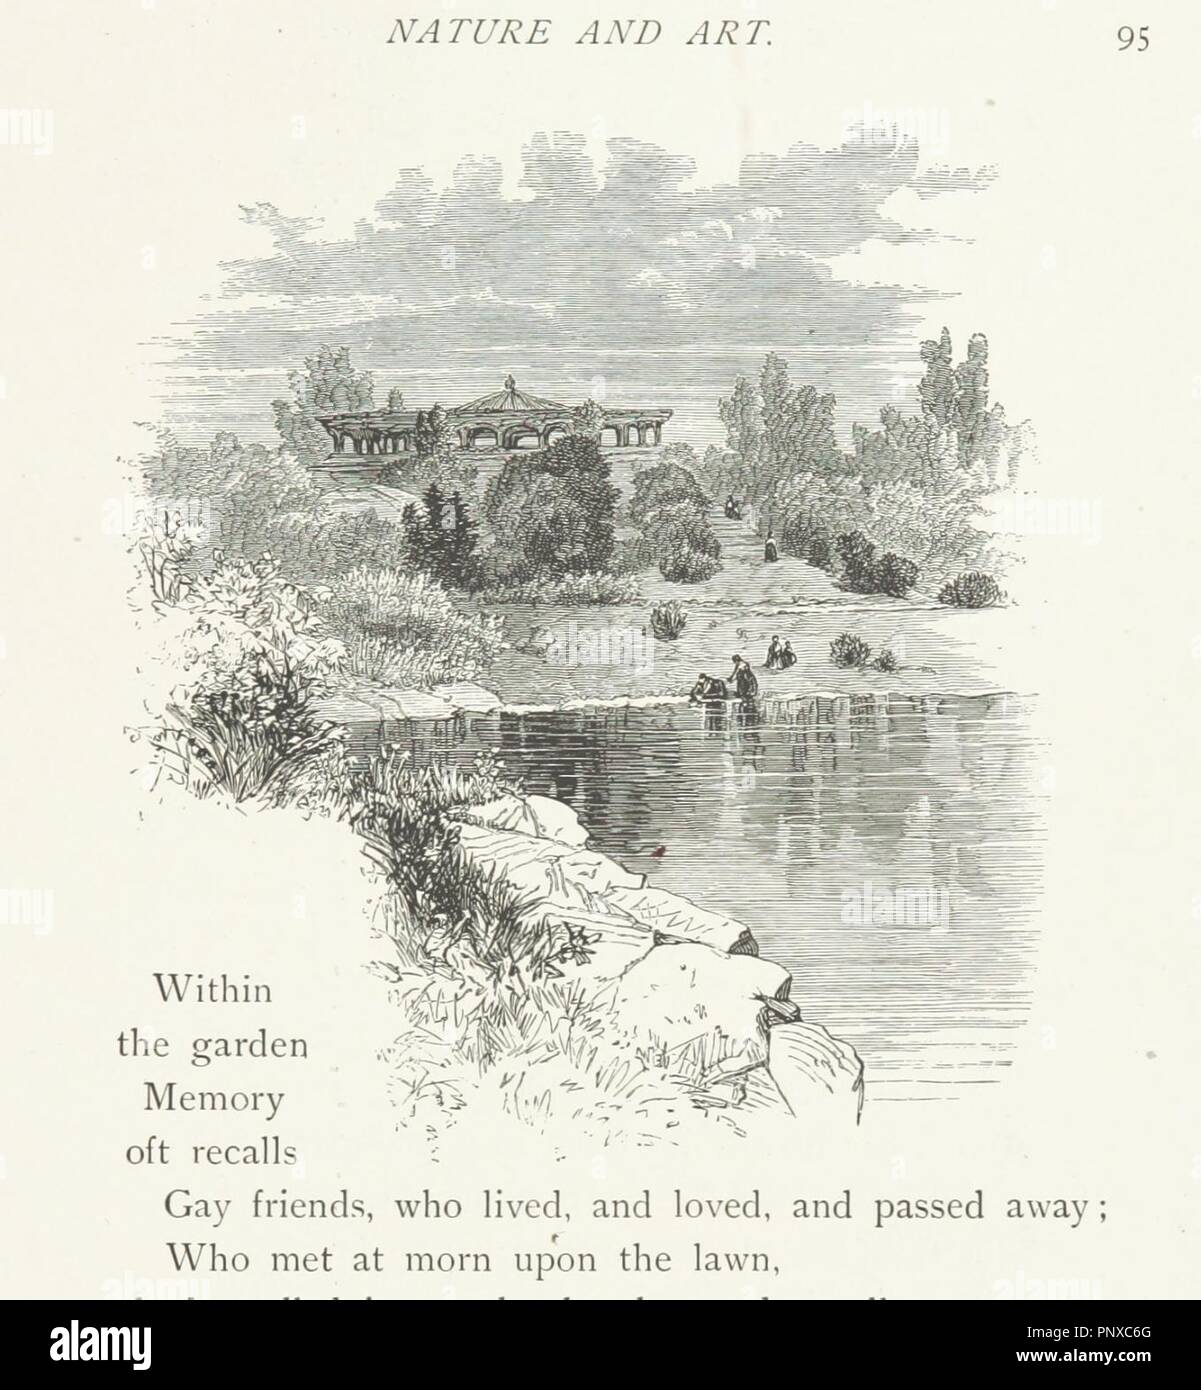 Image From Page 119 Of Nature And Art Poems And Pictures